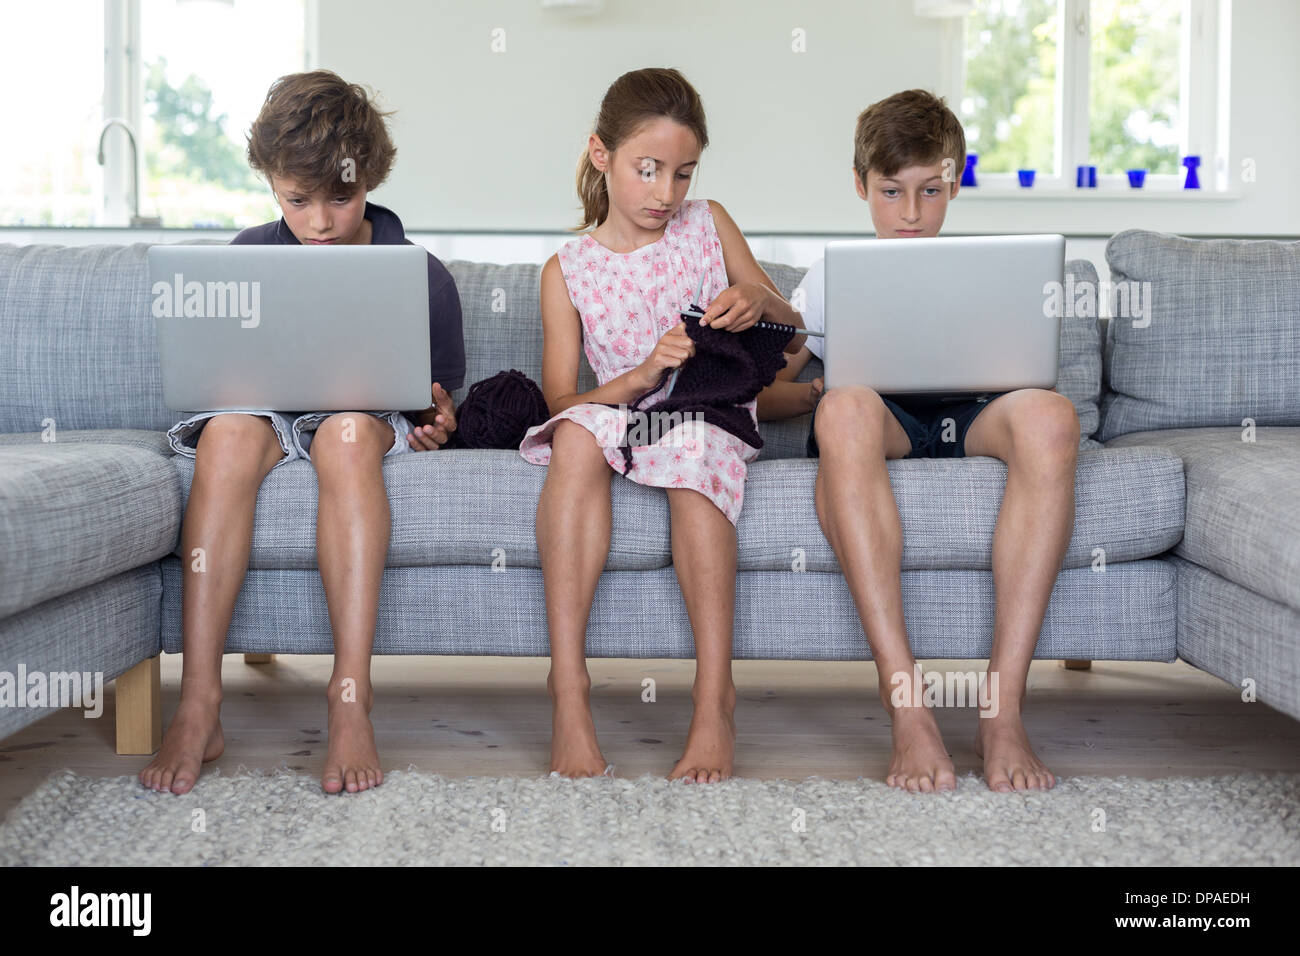 Brothers and sister on sofa with computers and knitting - Stock Image